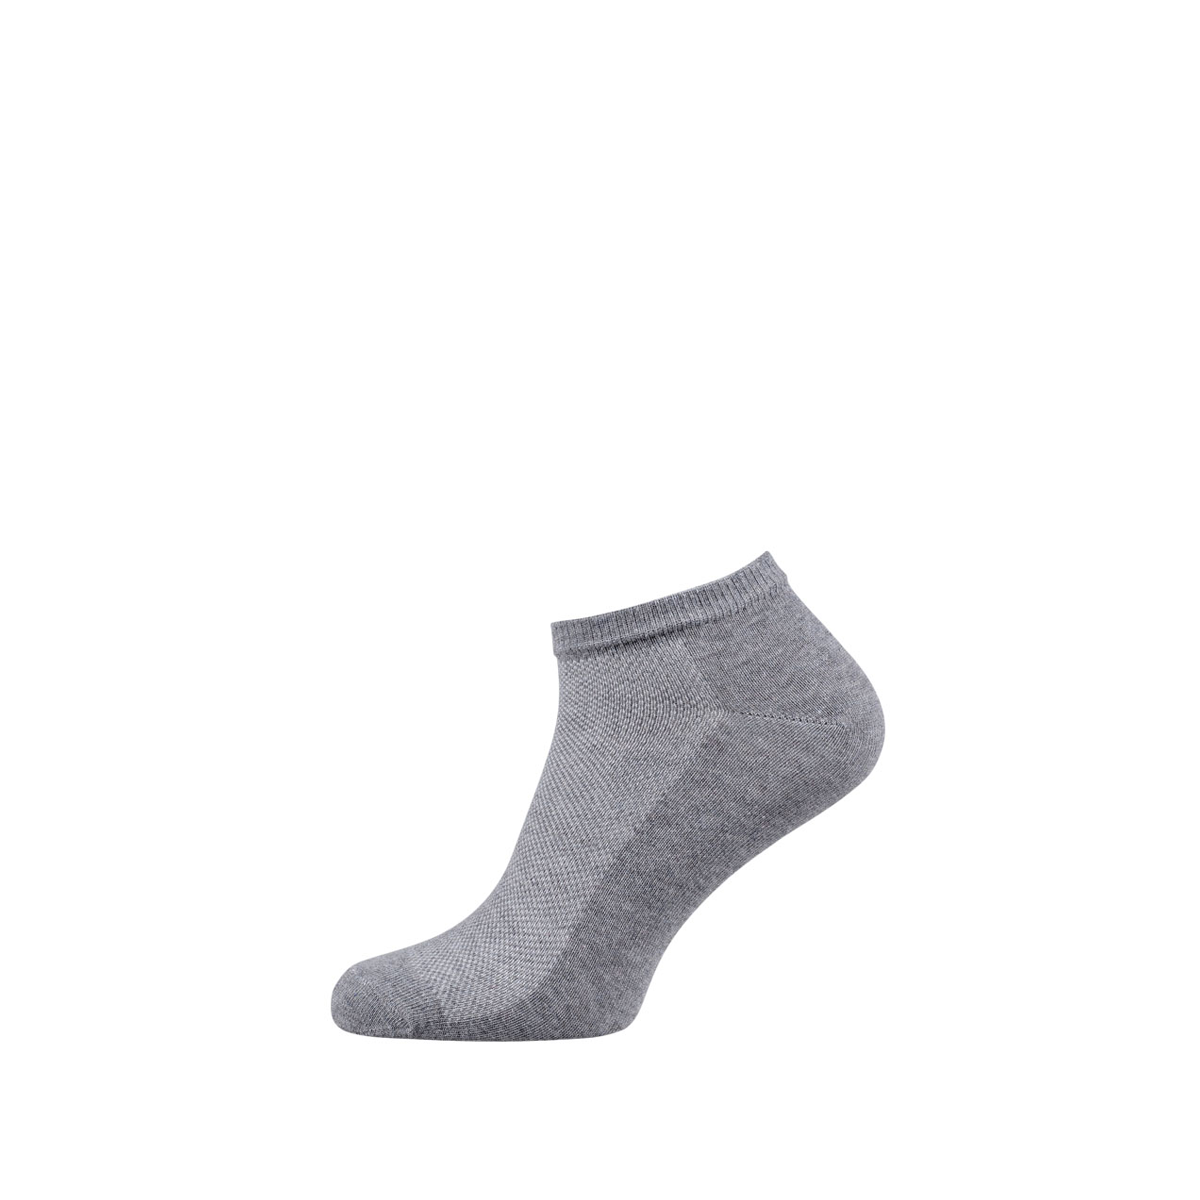 Breathable Ankle Socks for Men and Women Light Grey